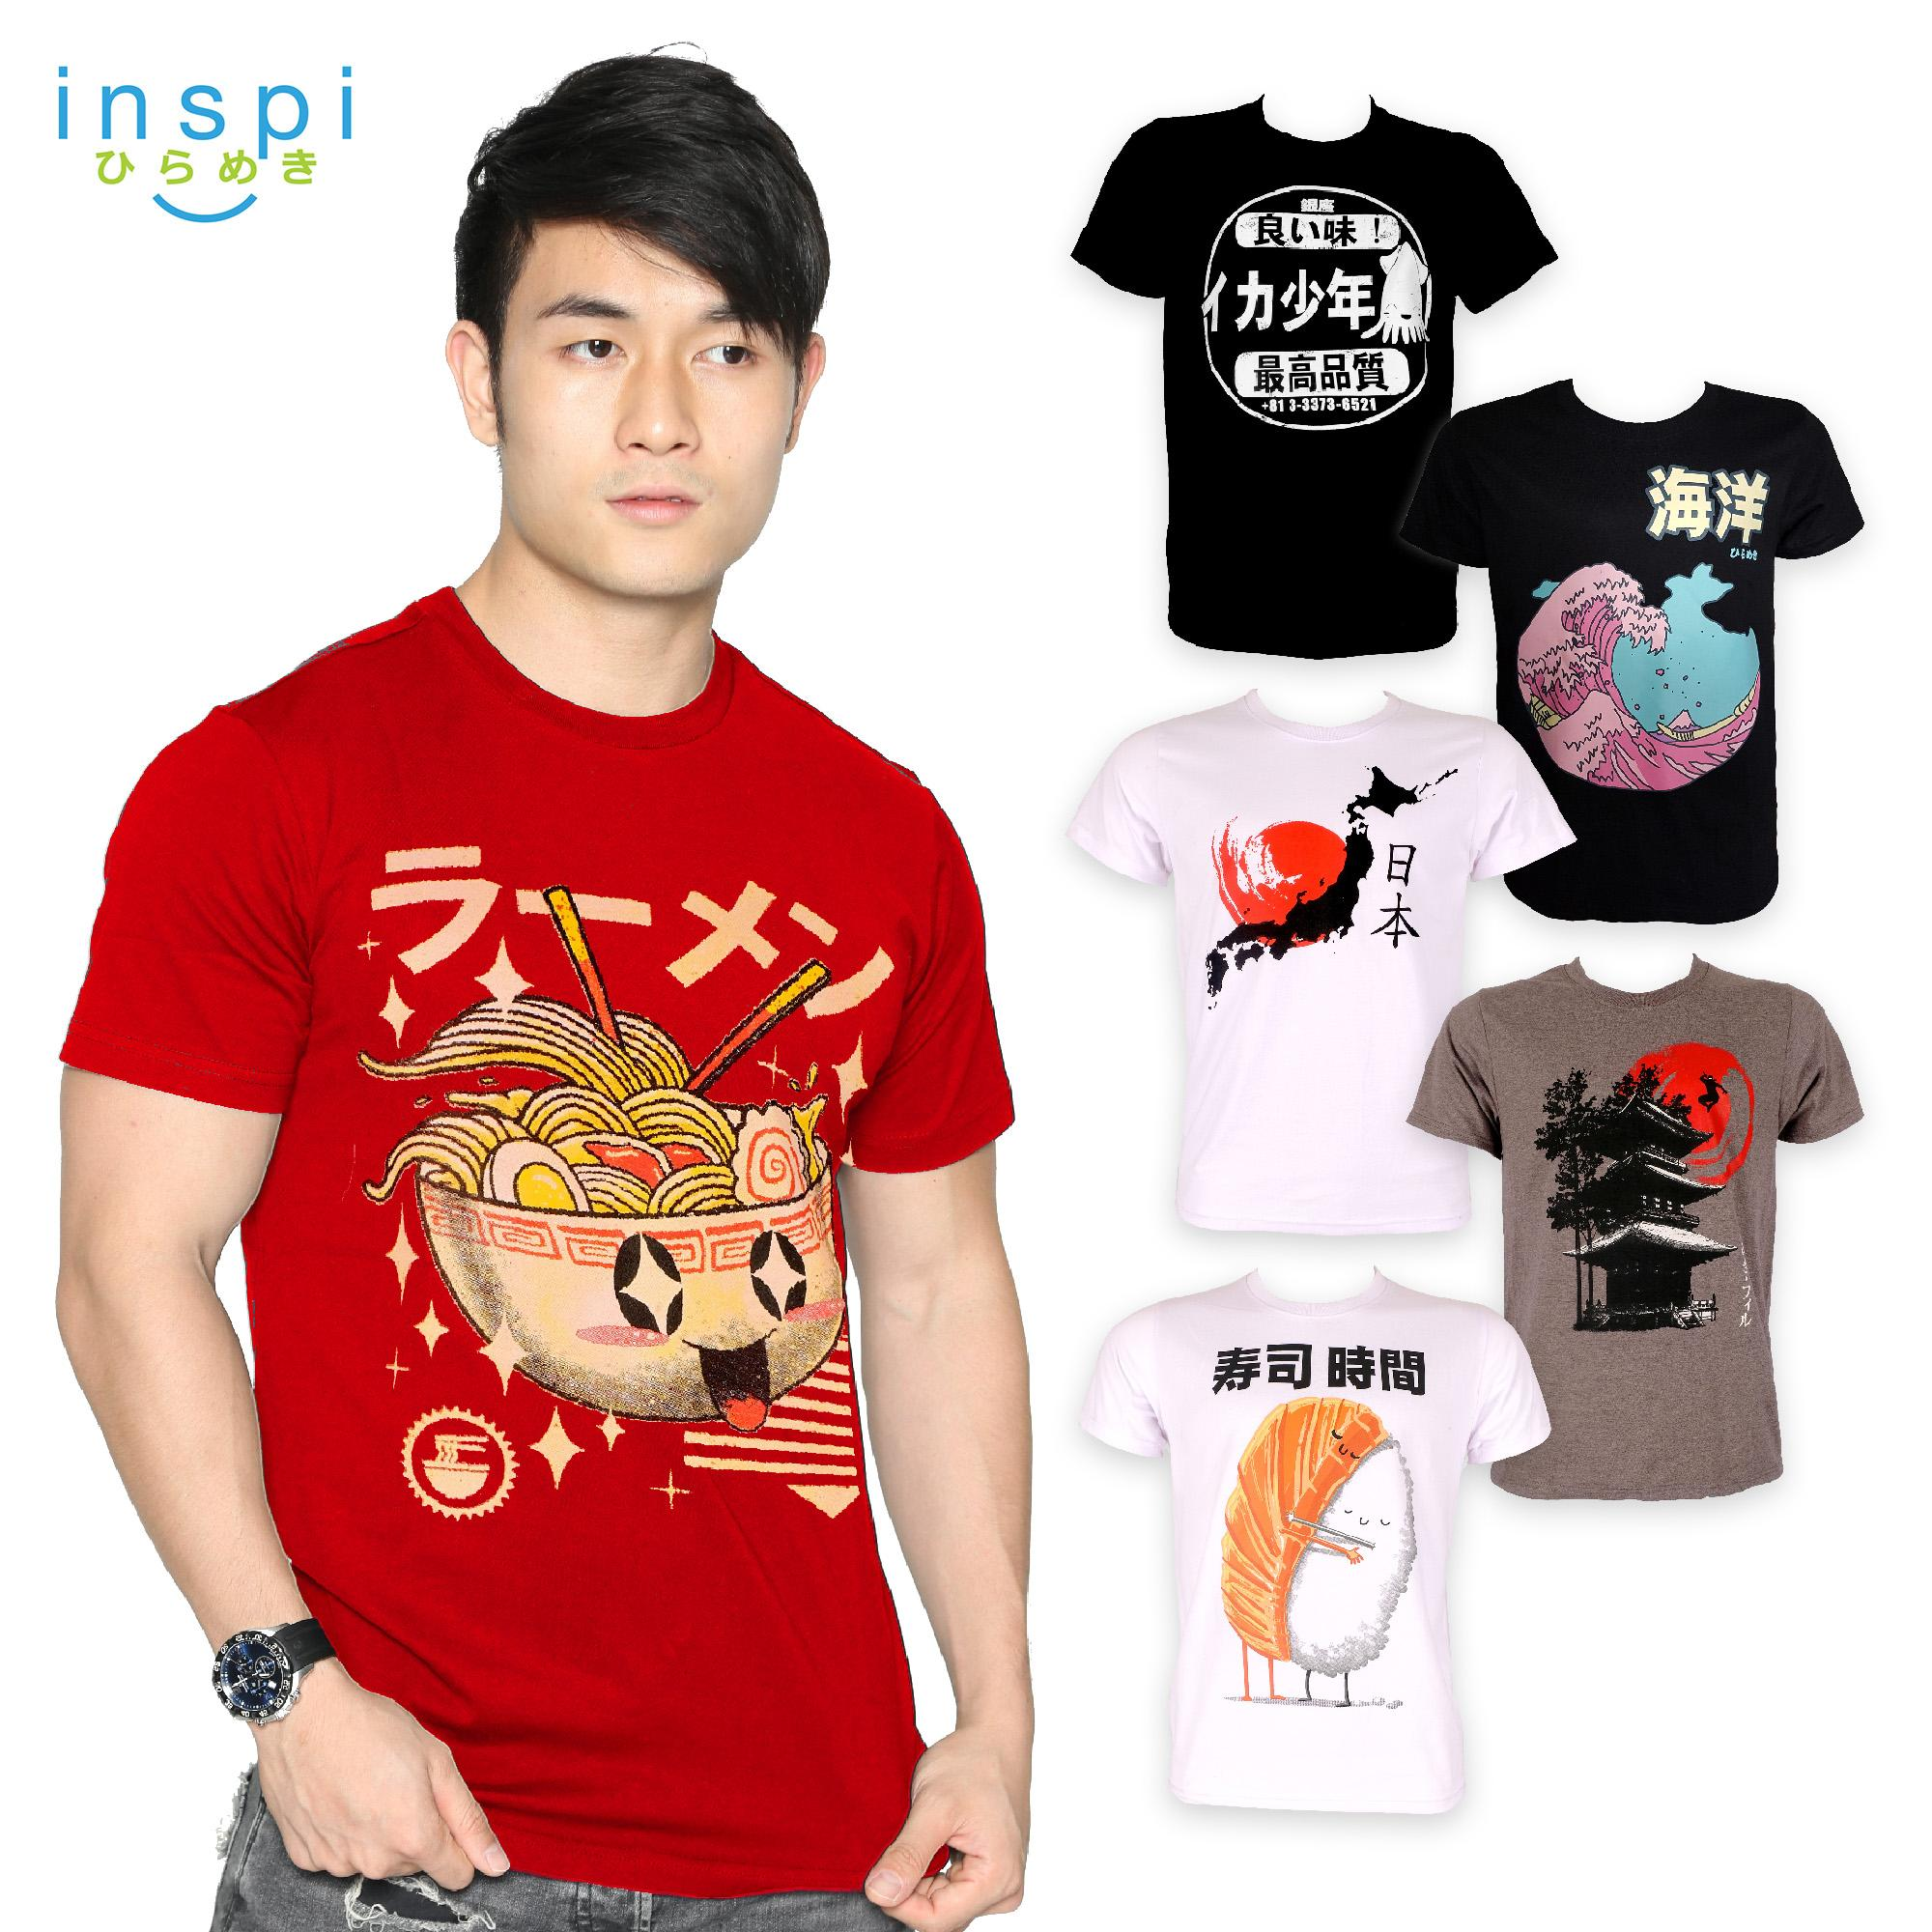 e141896540e INSPI Tees Nippon Collection tshirt printed graphic tee Mens t shirt shirts  for men tshirts sale